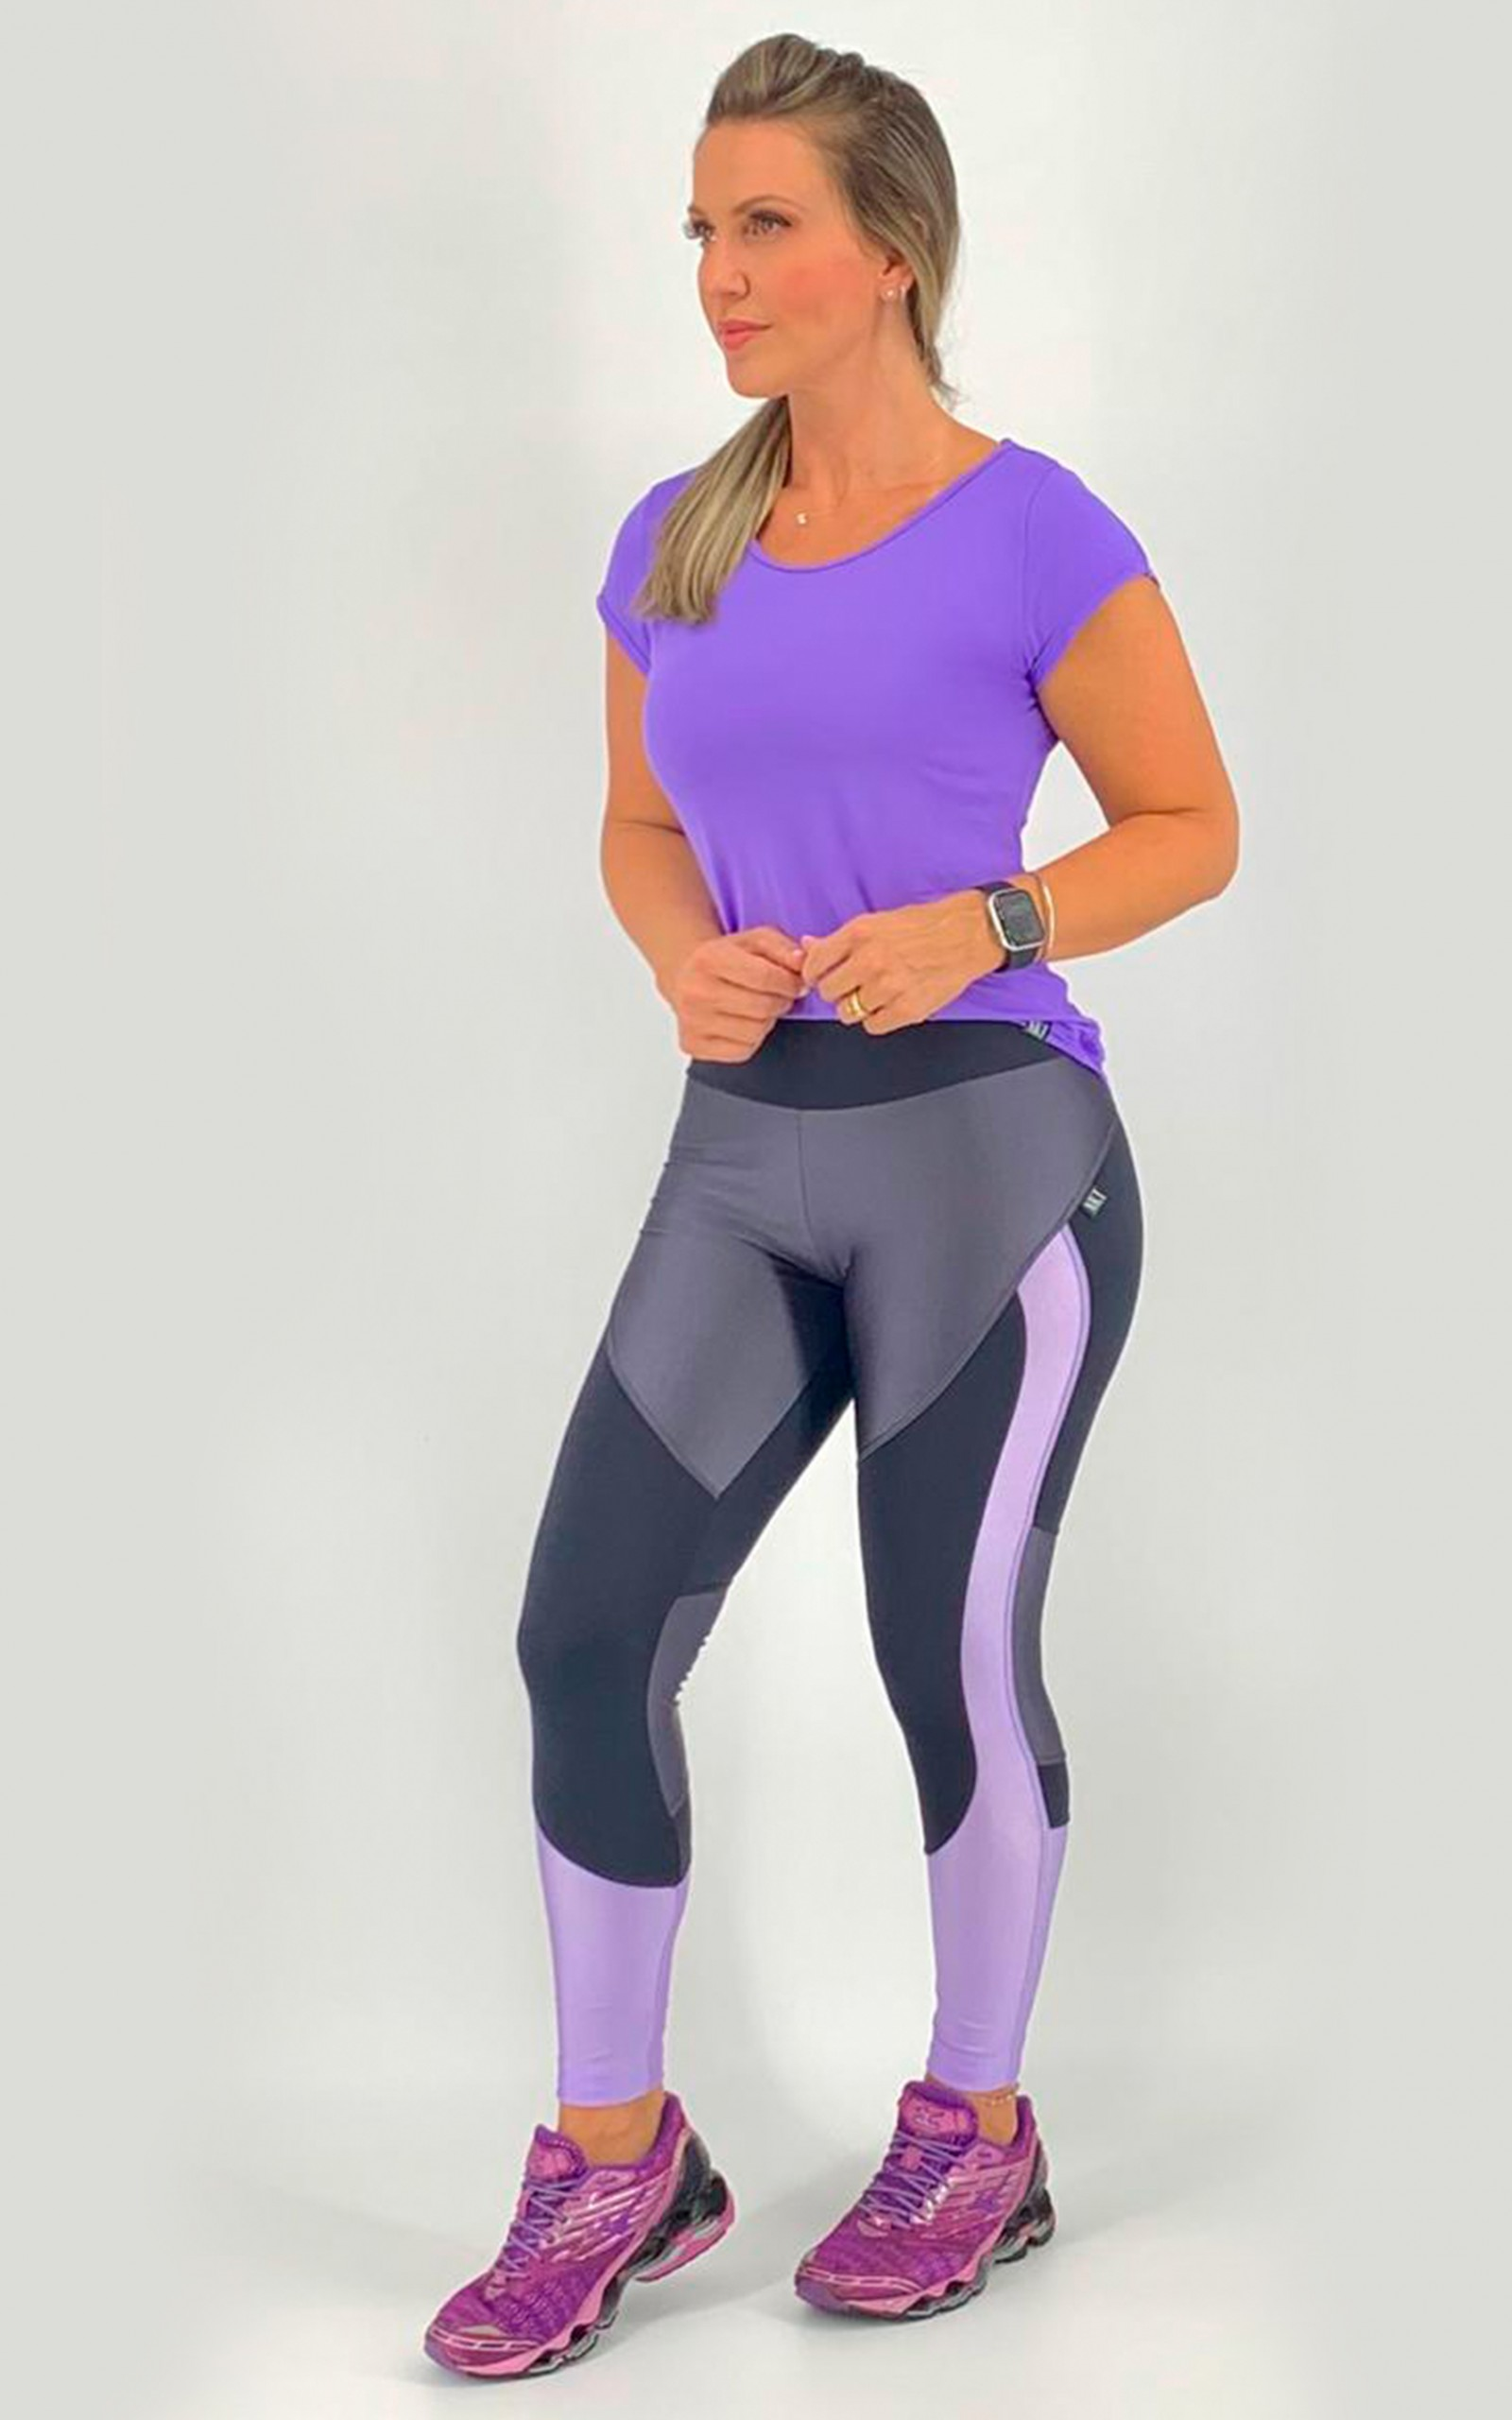 Legging Moviment Lilás, Coleção Move Your Body - NKT Fitwear Moda Fitness